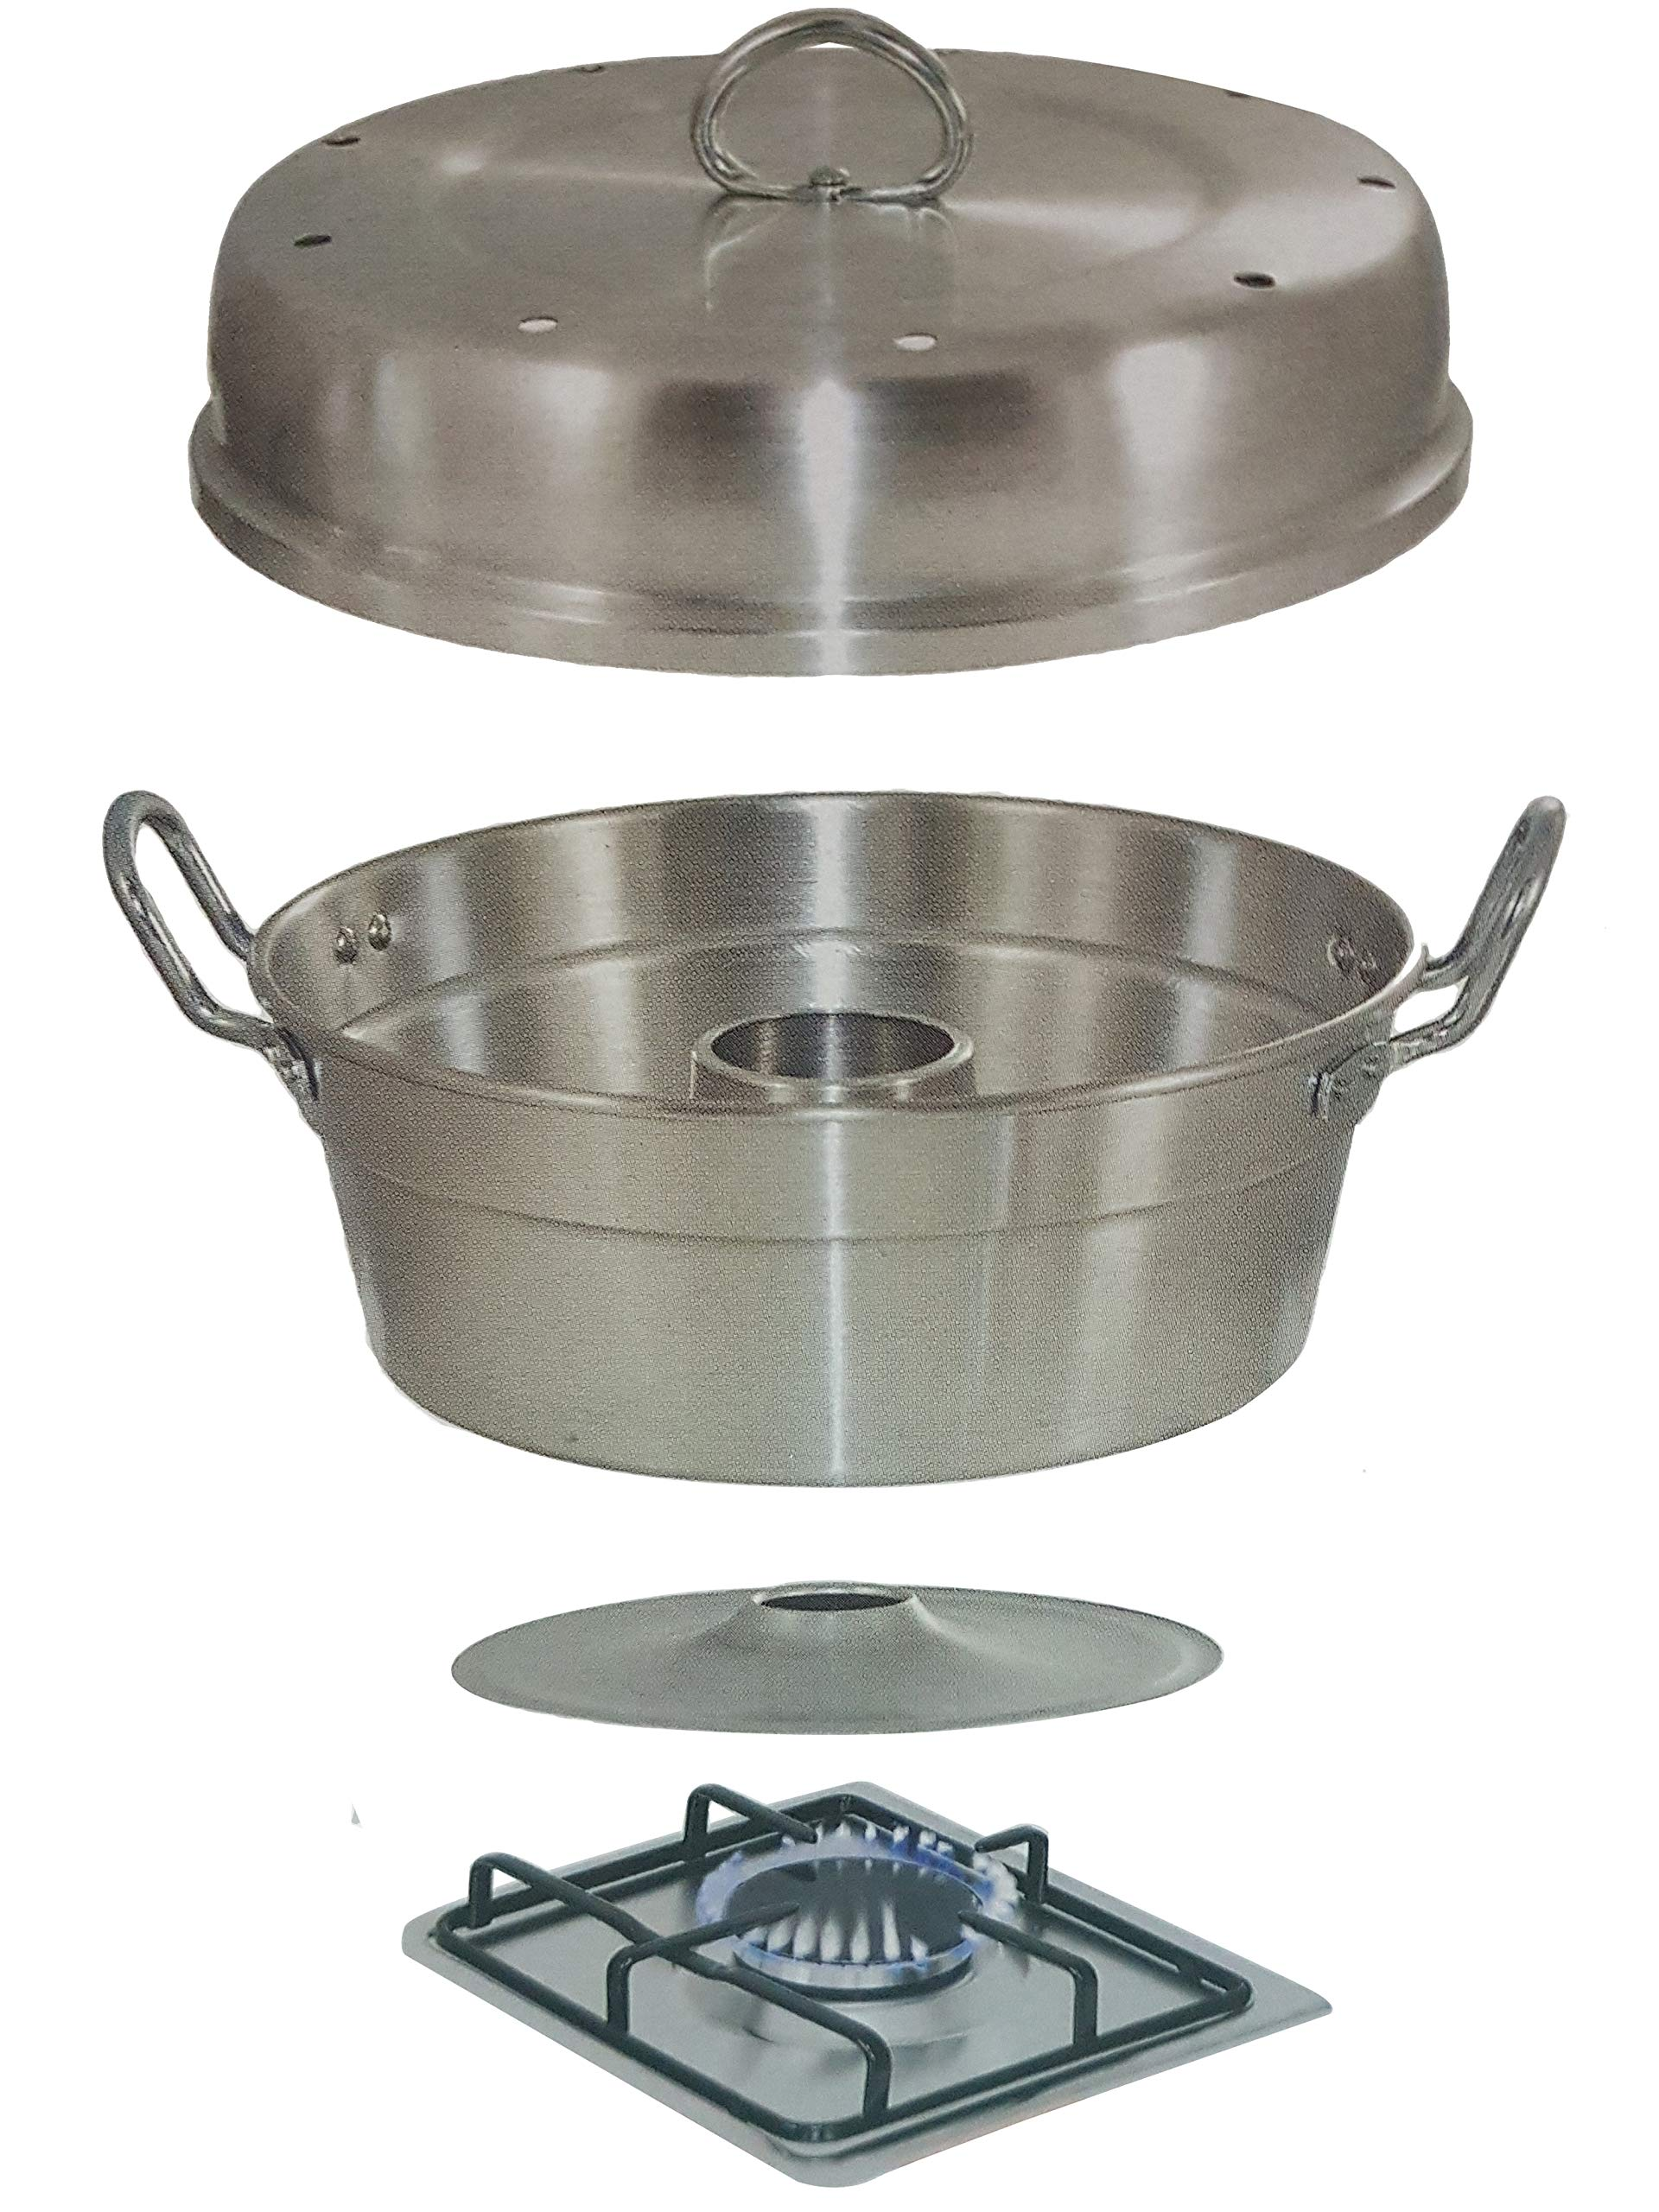 CatchTheWave ALUMINUM WONDER POT Slow Cooker, 3 Quart, Oven Bakeware Cookware, Cooking Baking Cake Bread On Stove Top Gas, Made In Italy (Gas Not Included)